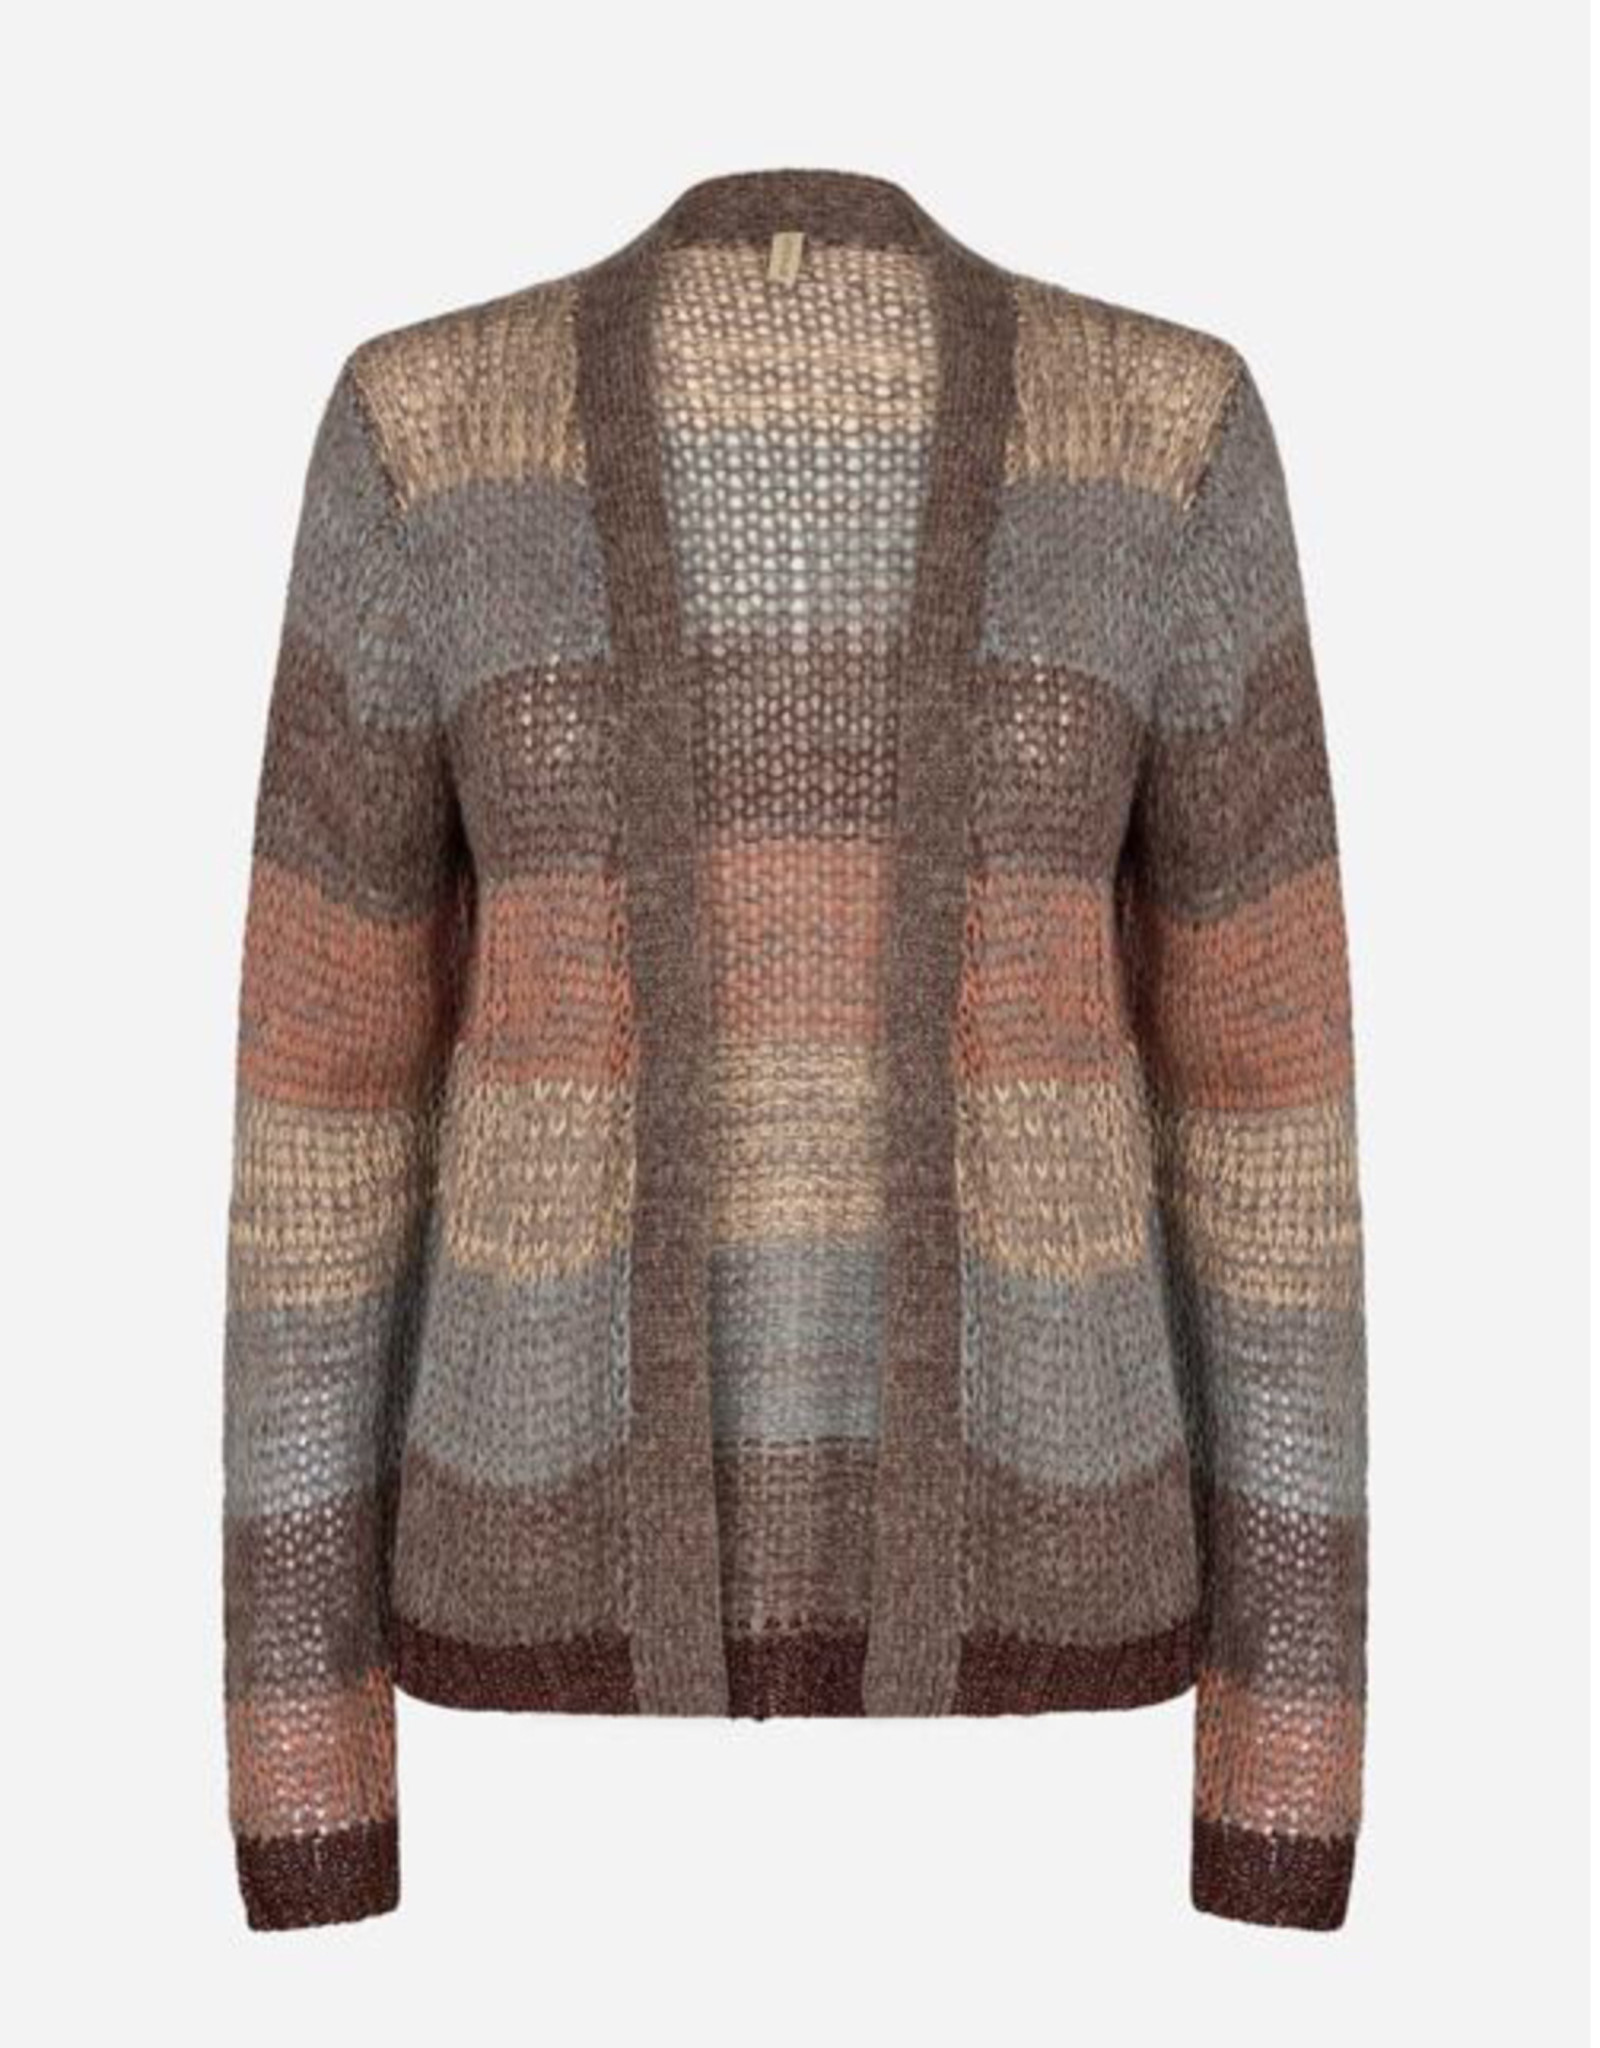 Soya Concept Soya Concept Tini 1 Knitted Mohair Blend Stripped Cardigan Sweater